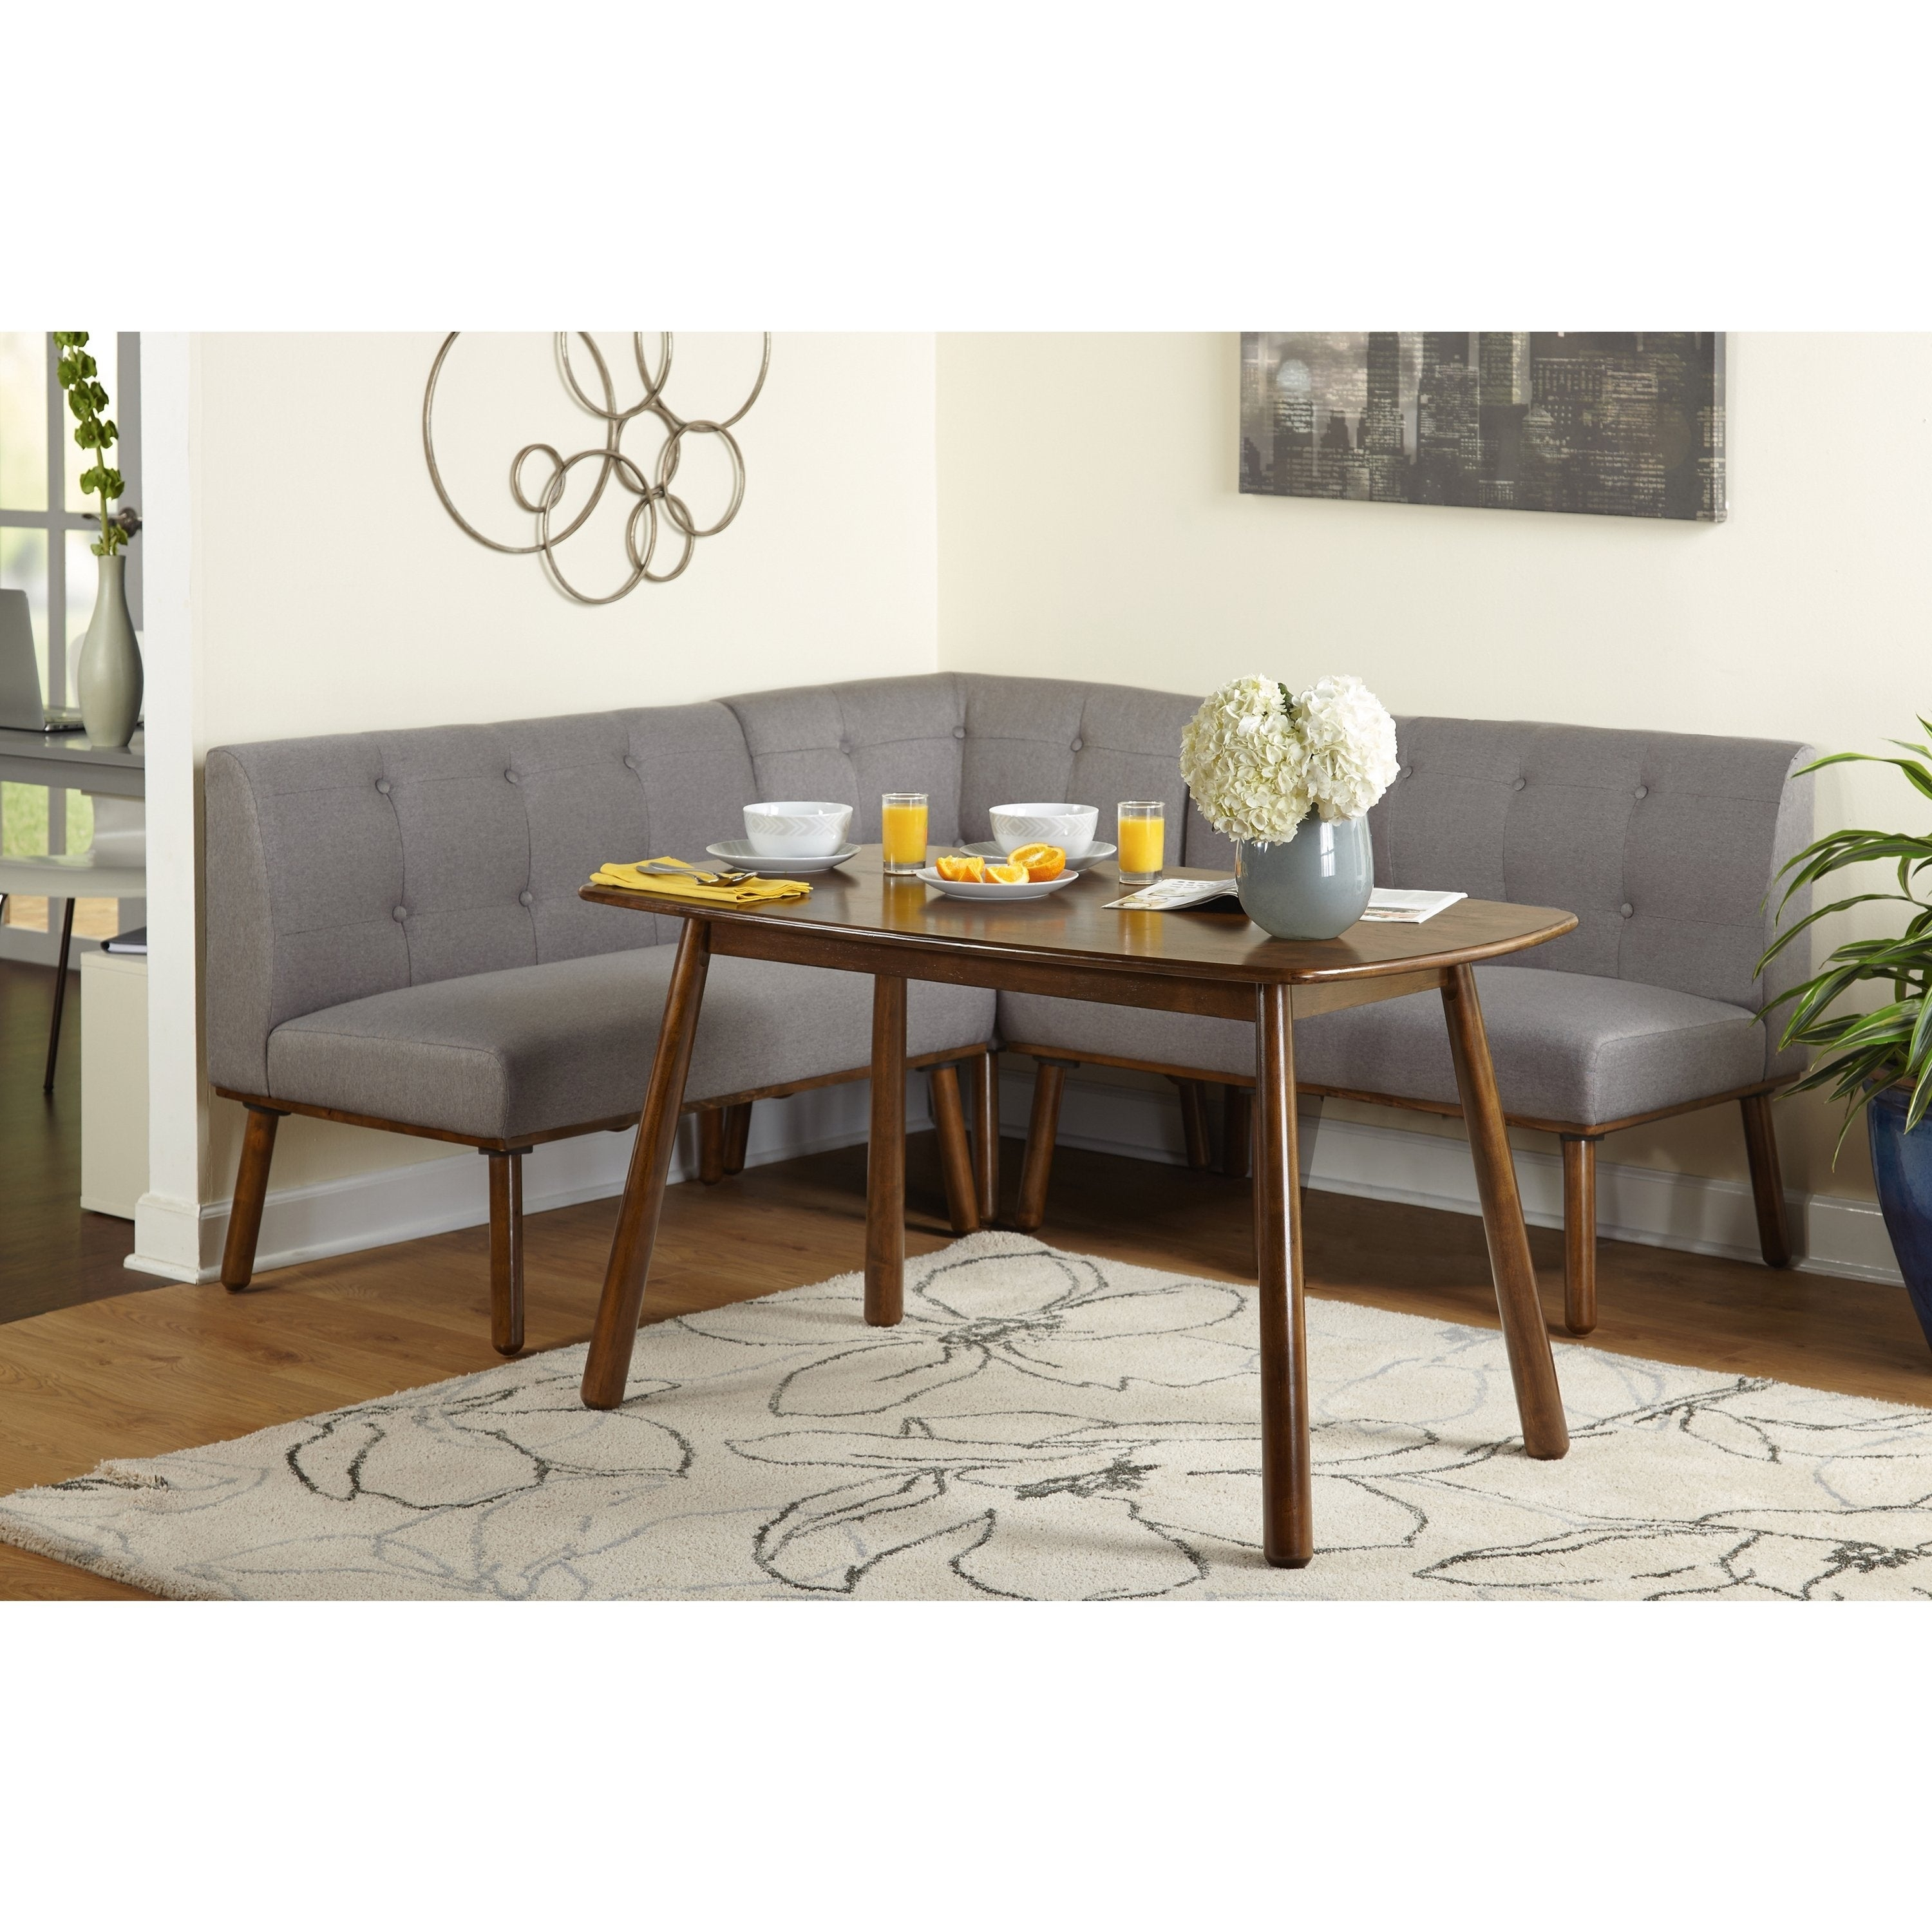 3 Piece Breakfast Nook Dinning Set With Well Known Buy Breakfast Nook, 3 Piece Sets Kitchen & Dining Room Sets Online (View 17 of 20)